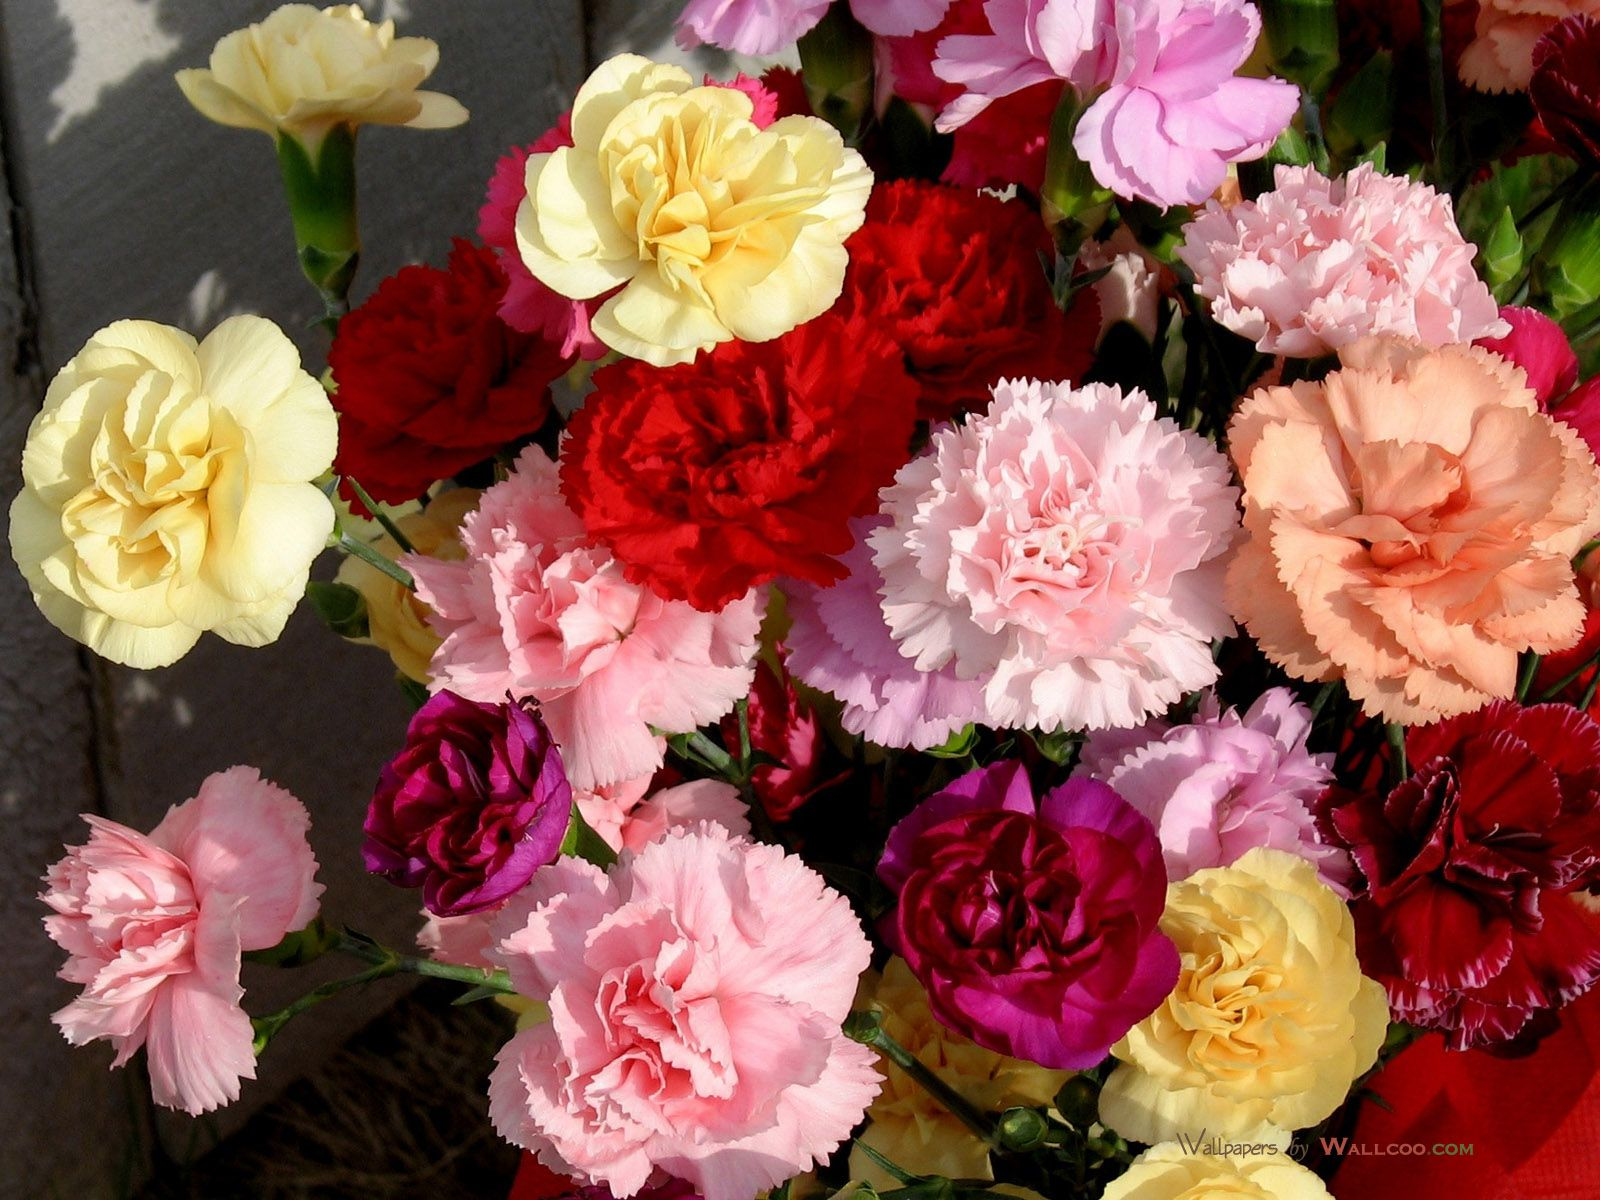 Carnation You Are Such A Pretty Flower But You Remind Me Of Death Flower Seeds Carnation Flower Flower Delivery